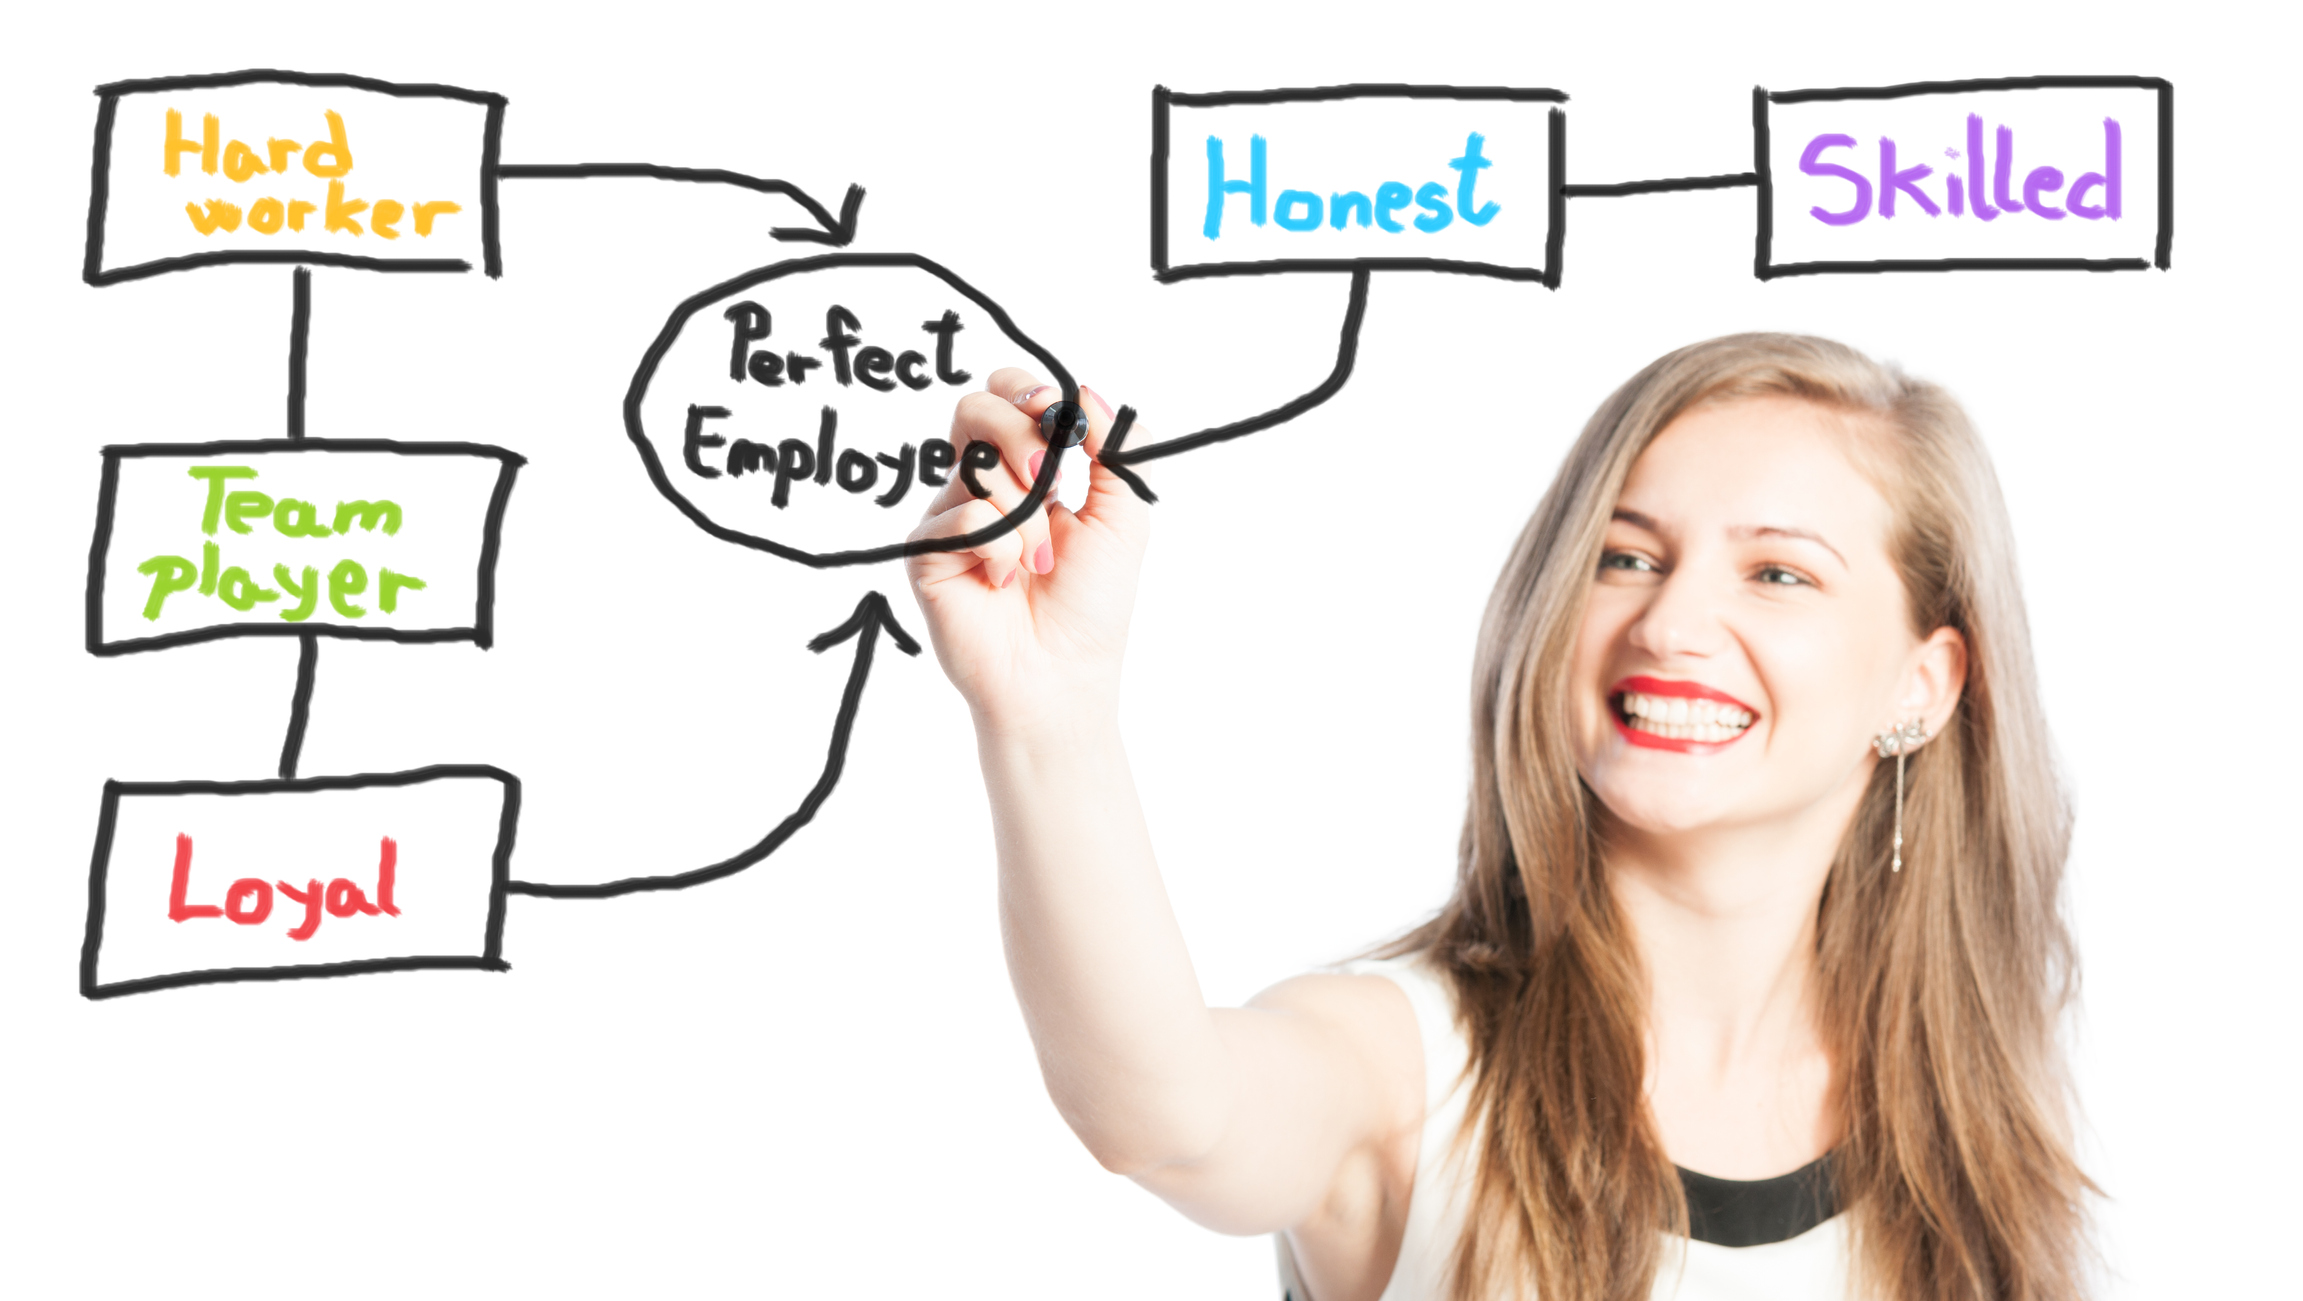 Subscribe-HR Perfect Employee